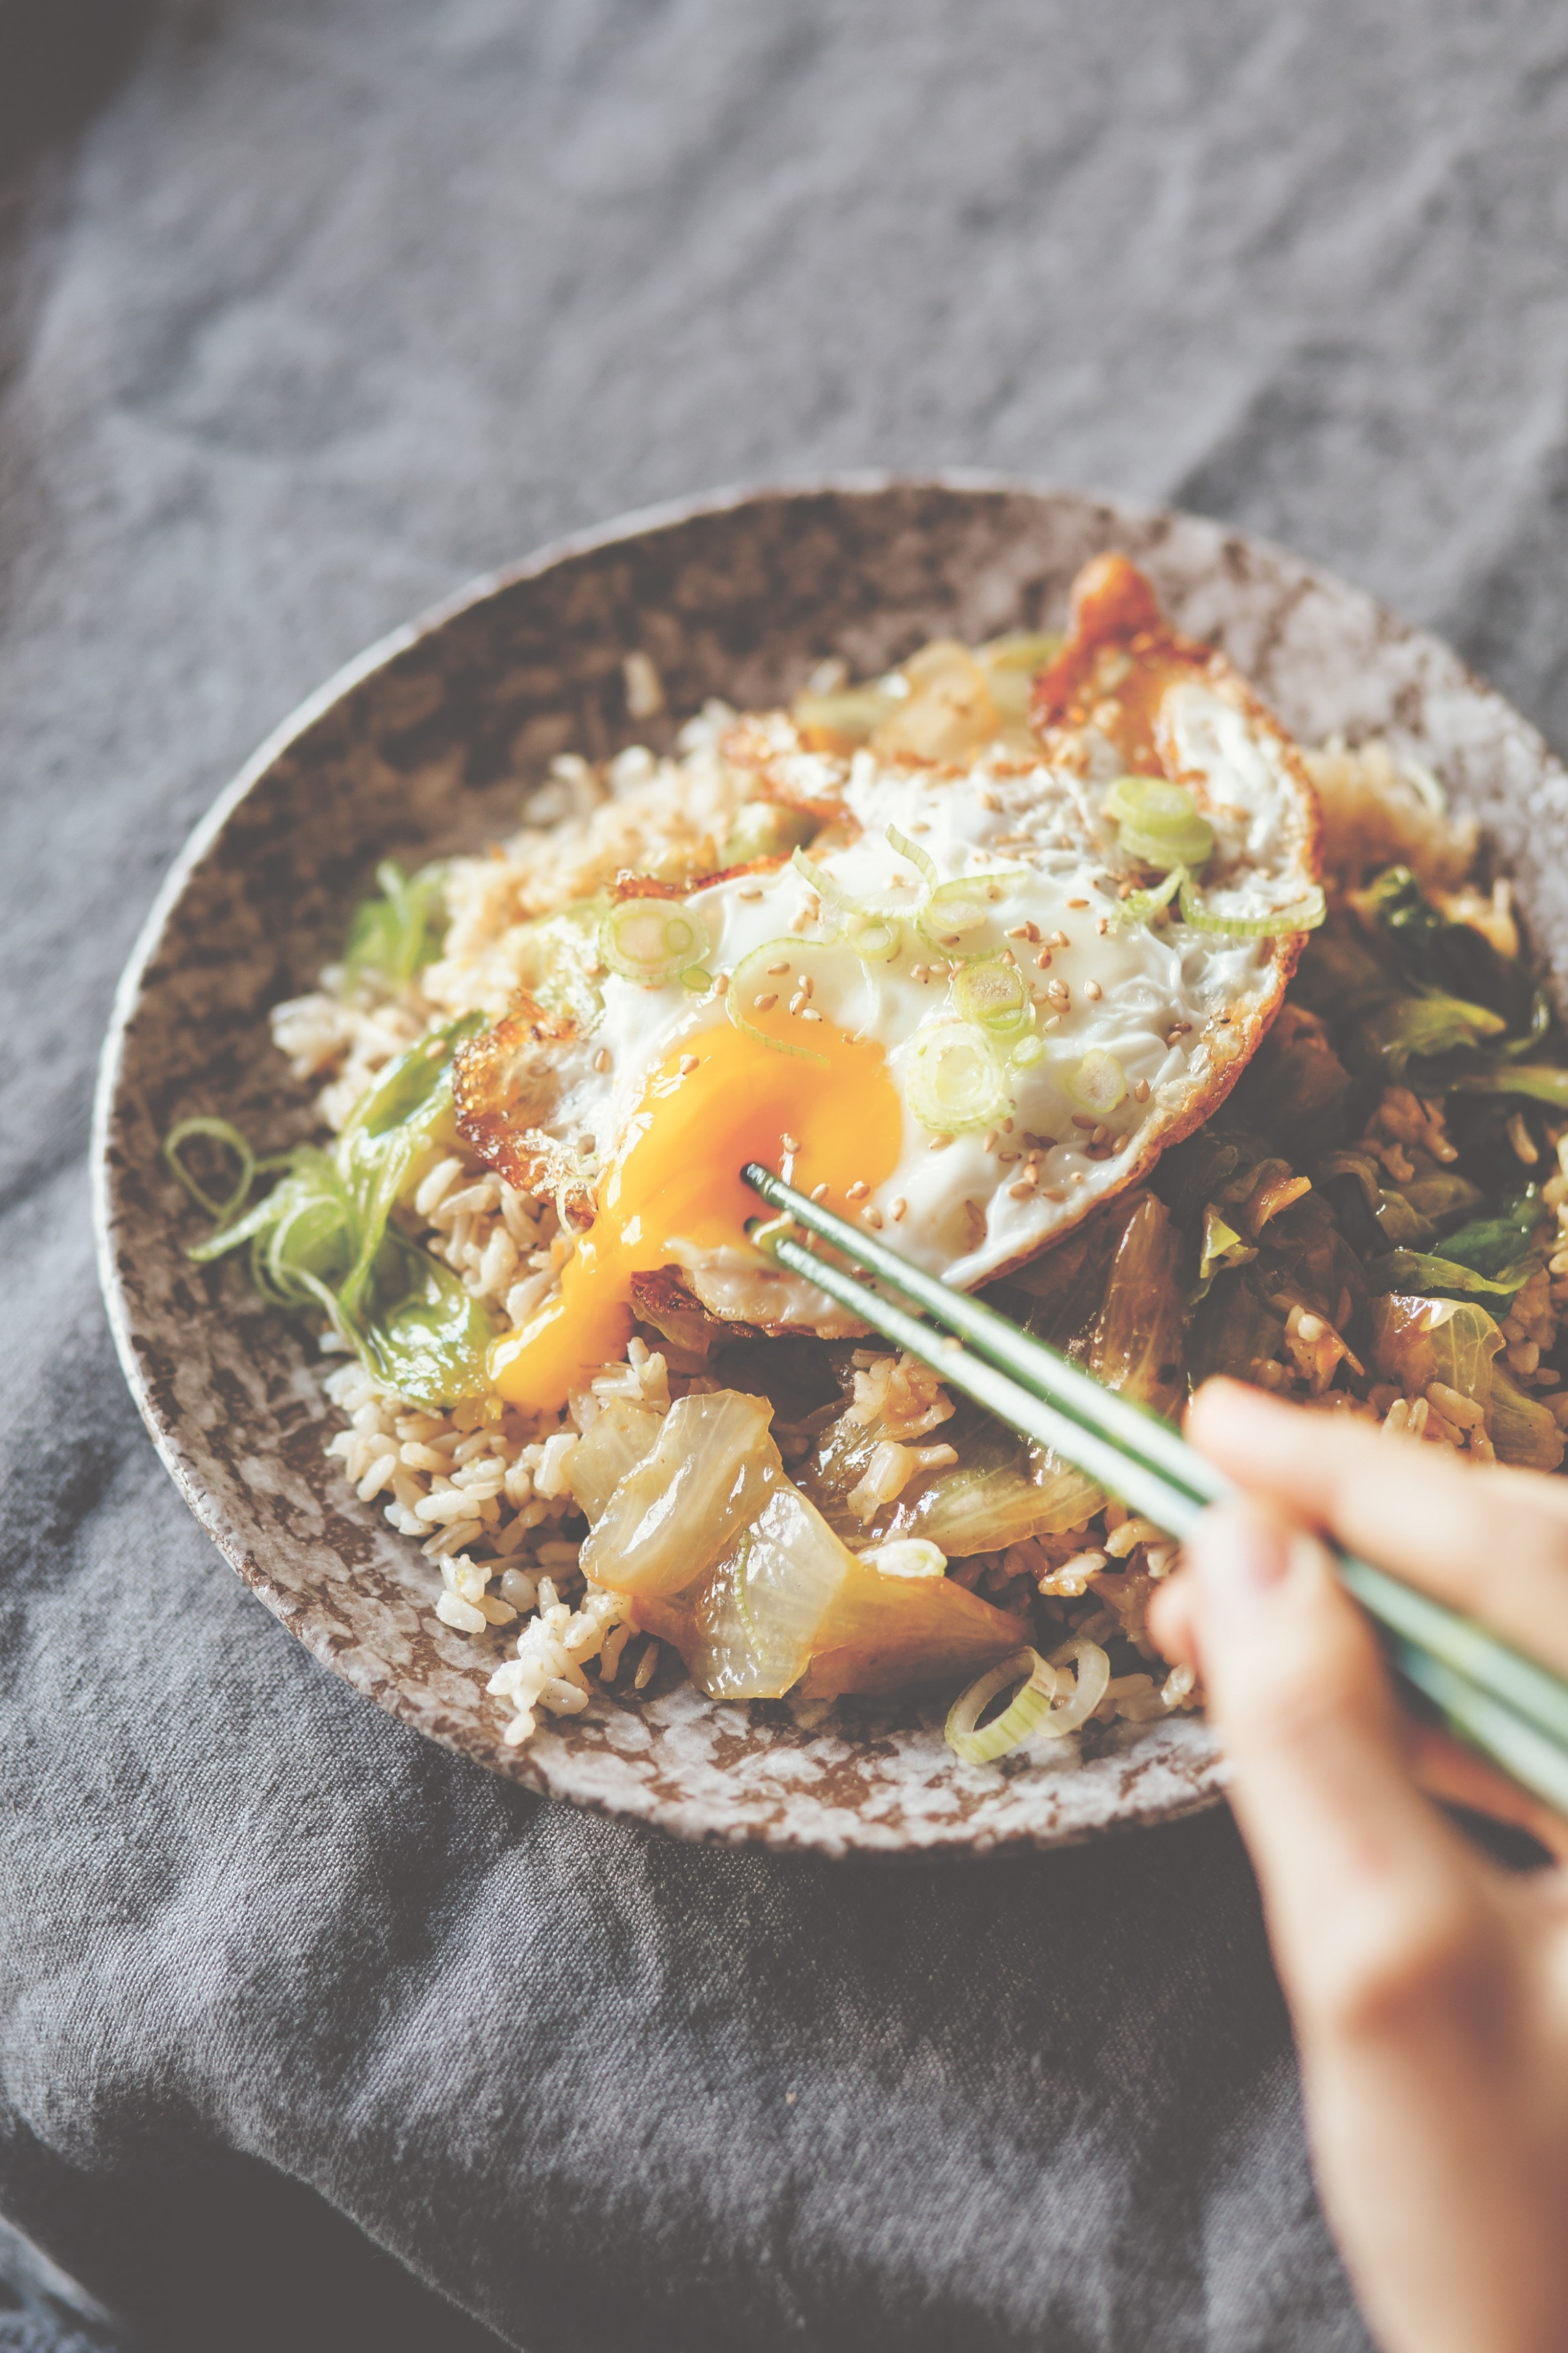 Stir-fried lettuce bowl with ginger fried rice and fried egg